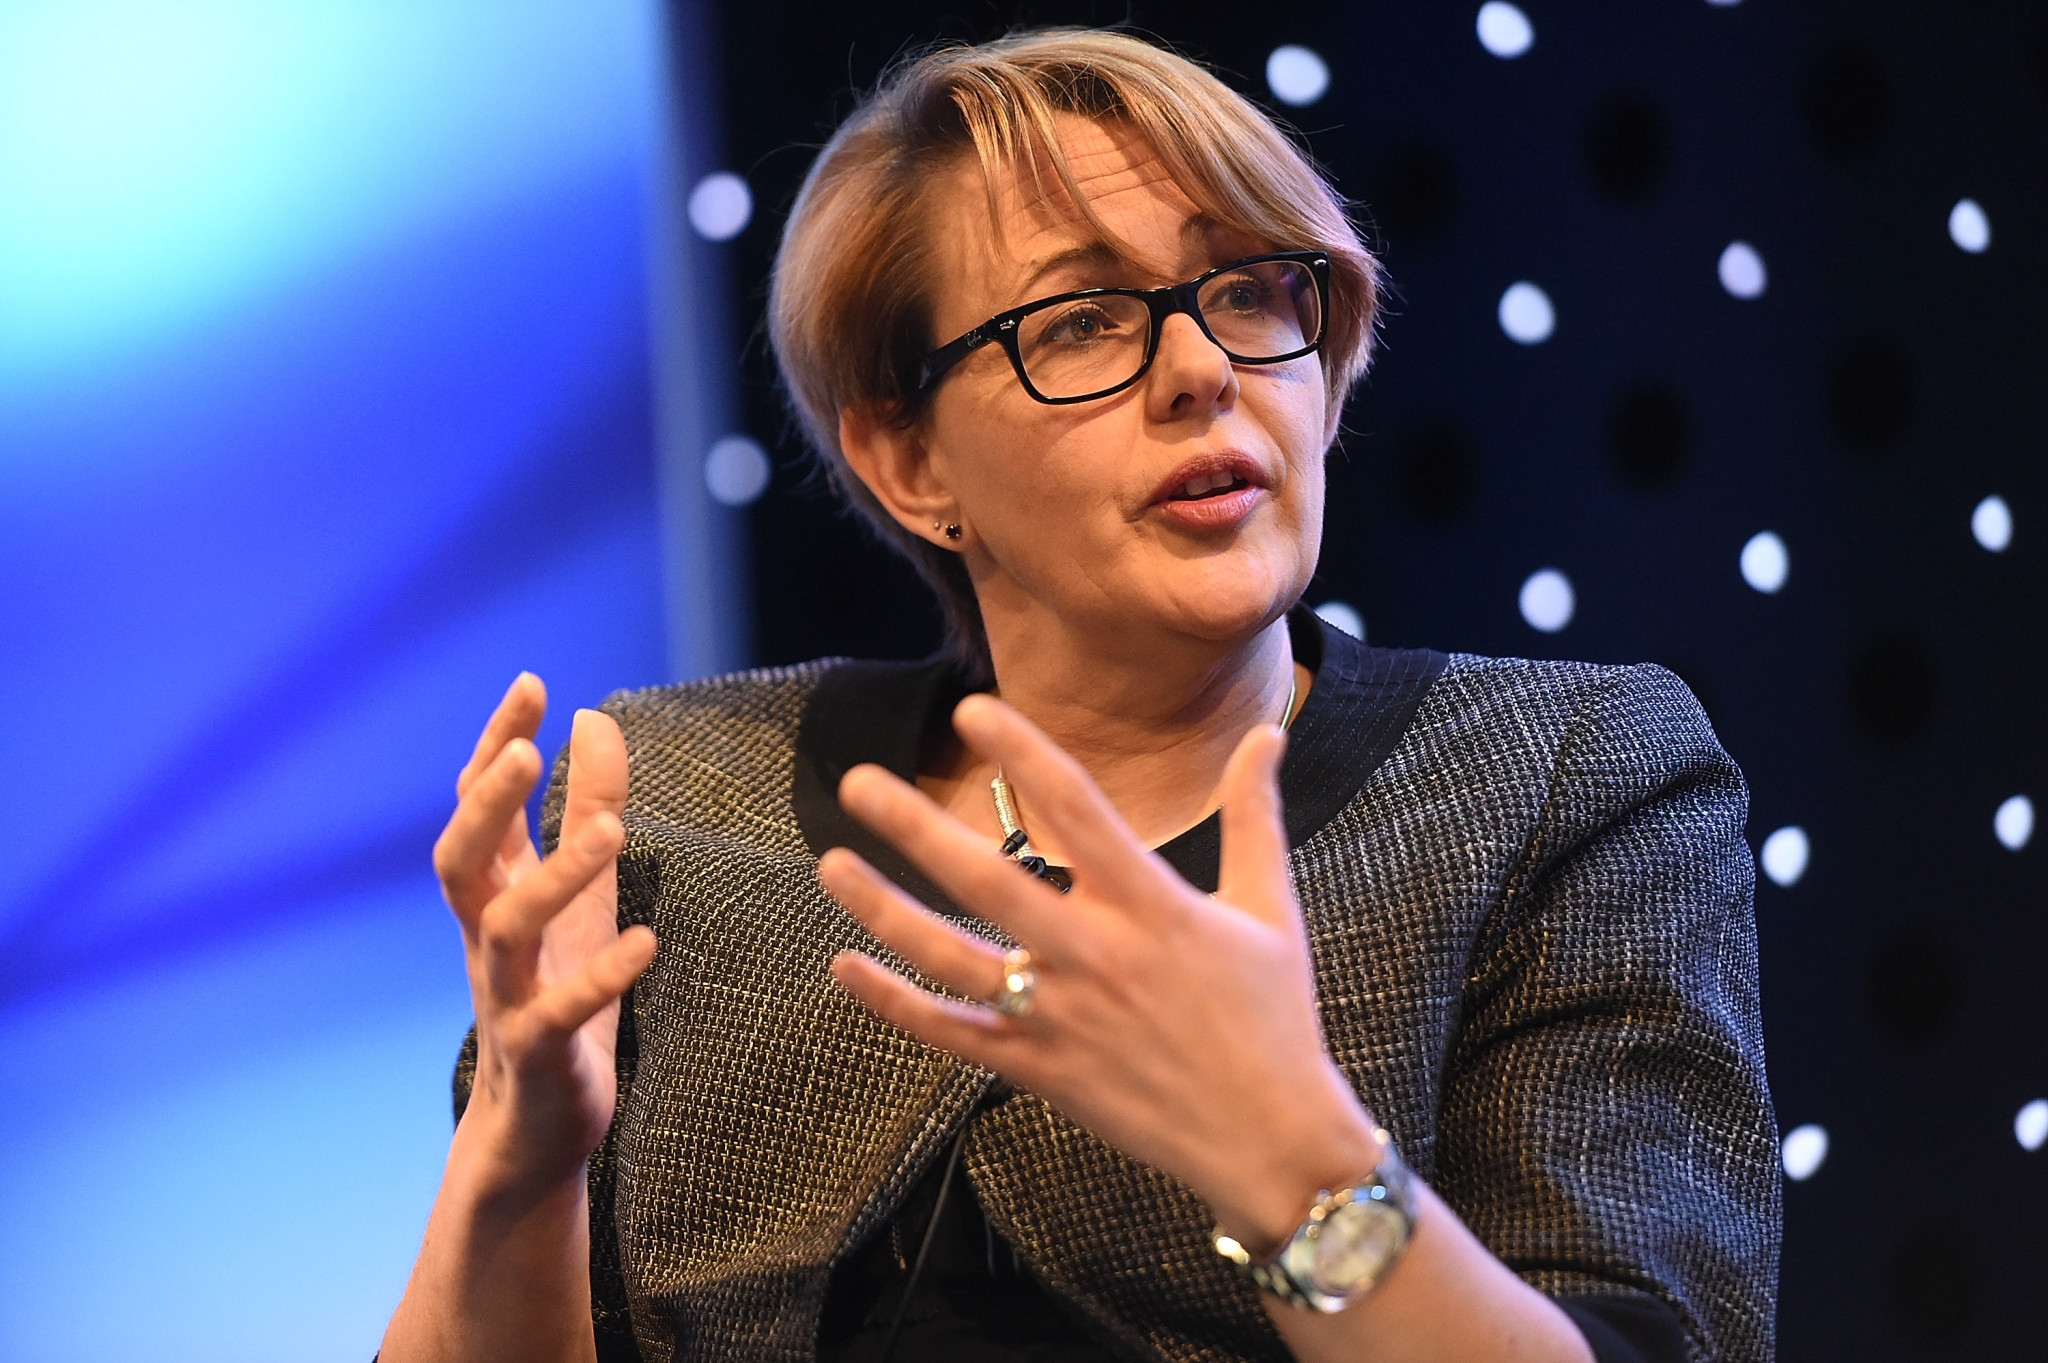 Eleven-time Paralympic gold medallist Baroness Tanni Grey-Thompson will appear at the hearing ©Getty Images